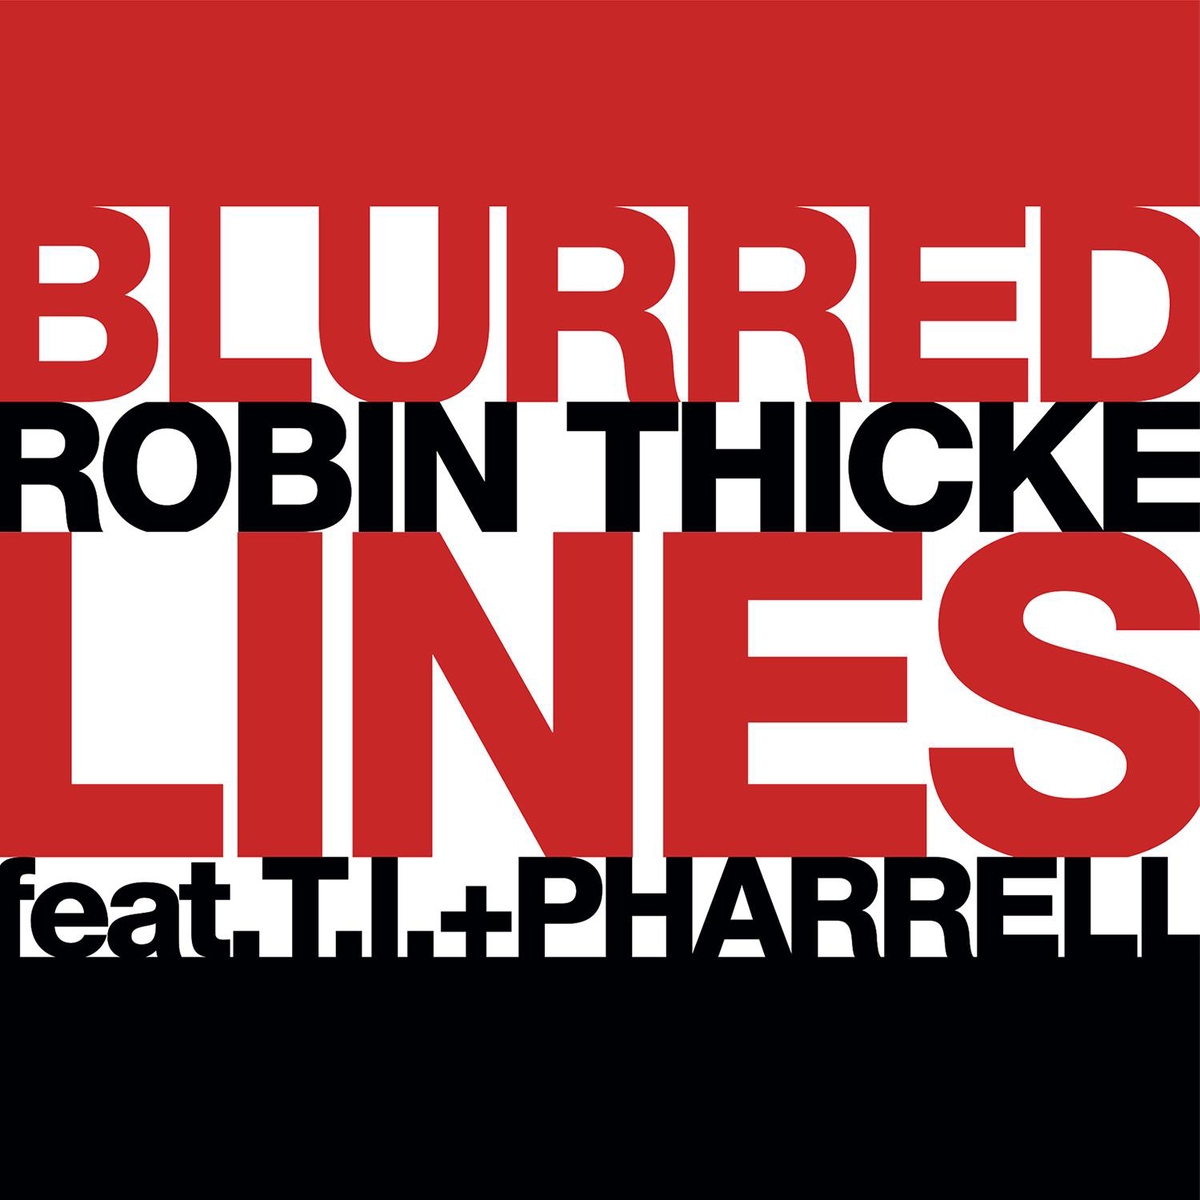 Blurred Lines - Wikipedia, la enciclopedia libre